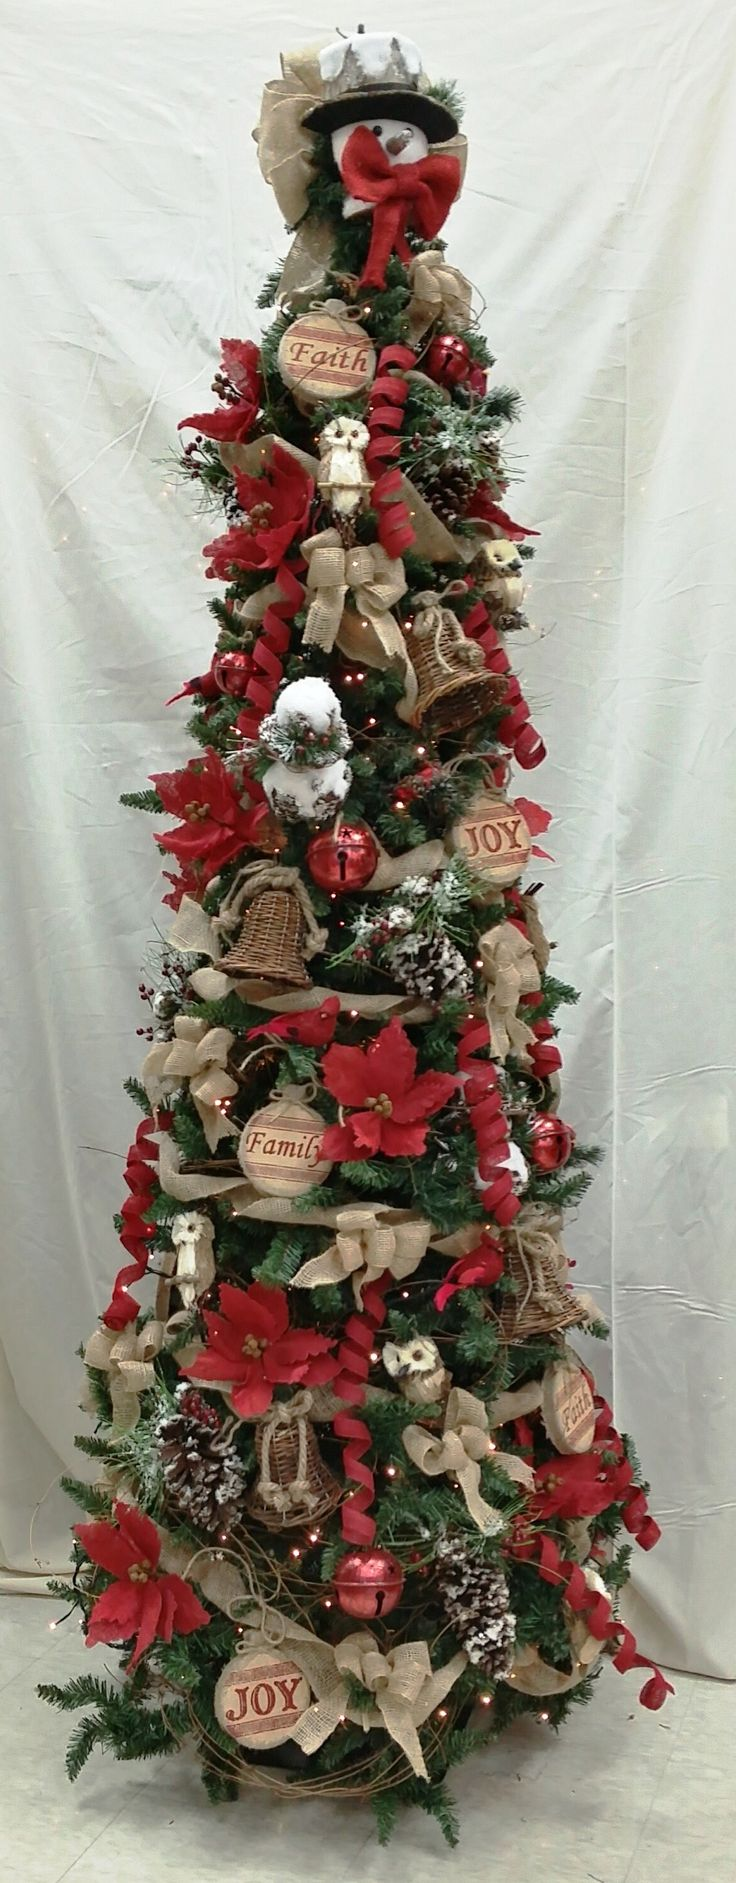 Love a more traditional Christmas Tree? Check out our custom made Woodsy Primitive Christmas Tree! #2014 #christmastrees